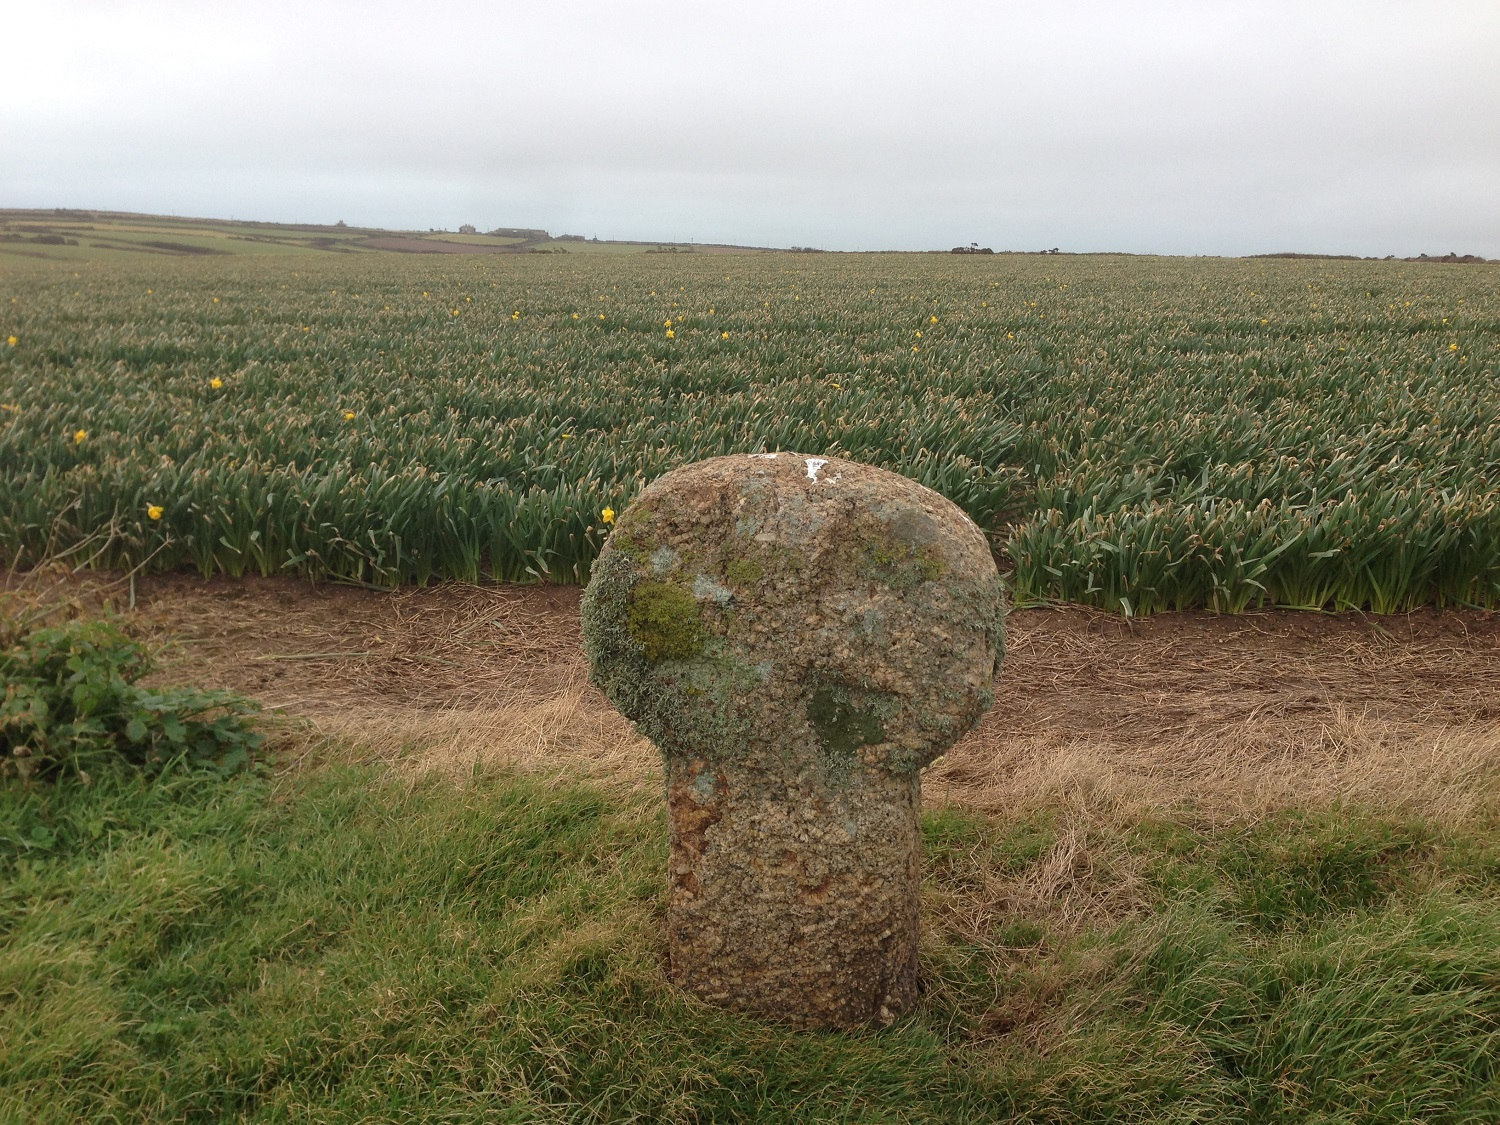 Great Circle Route, South West England Walks & Gardens, Daffodils & Ancient Relics on the Coast Path